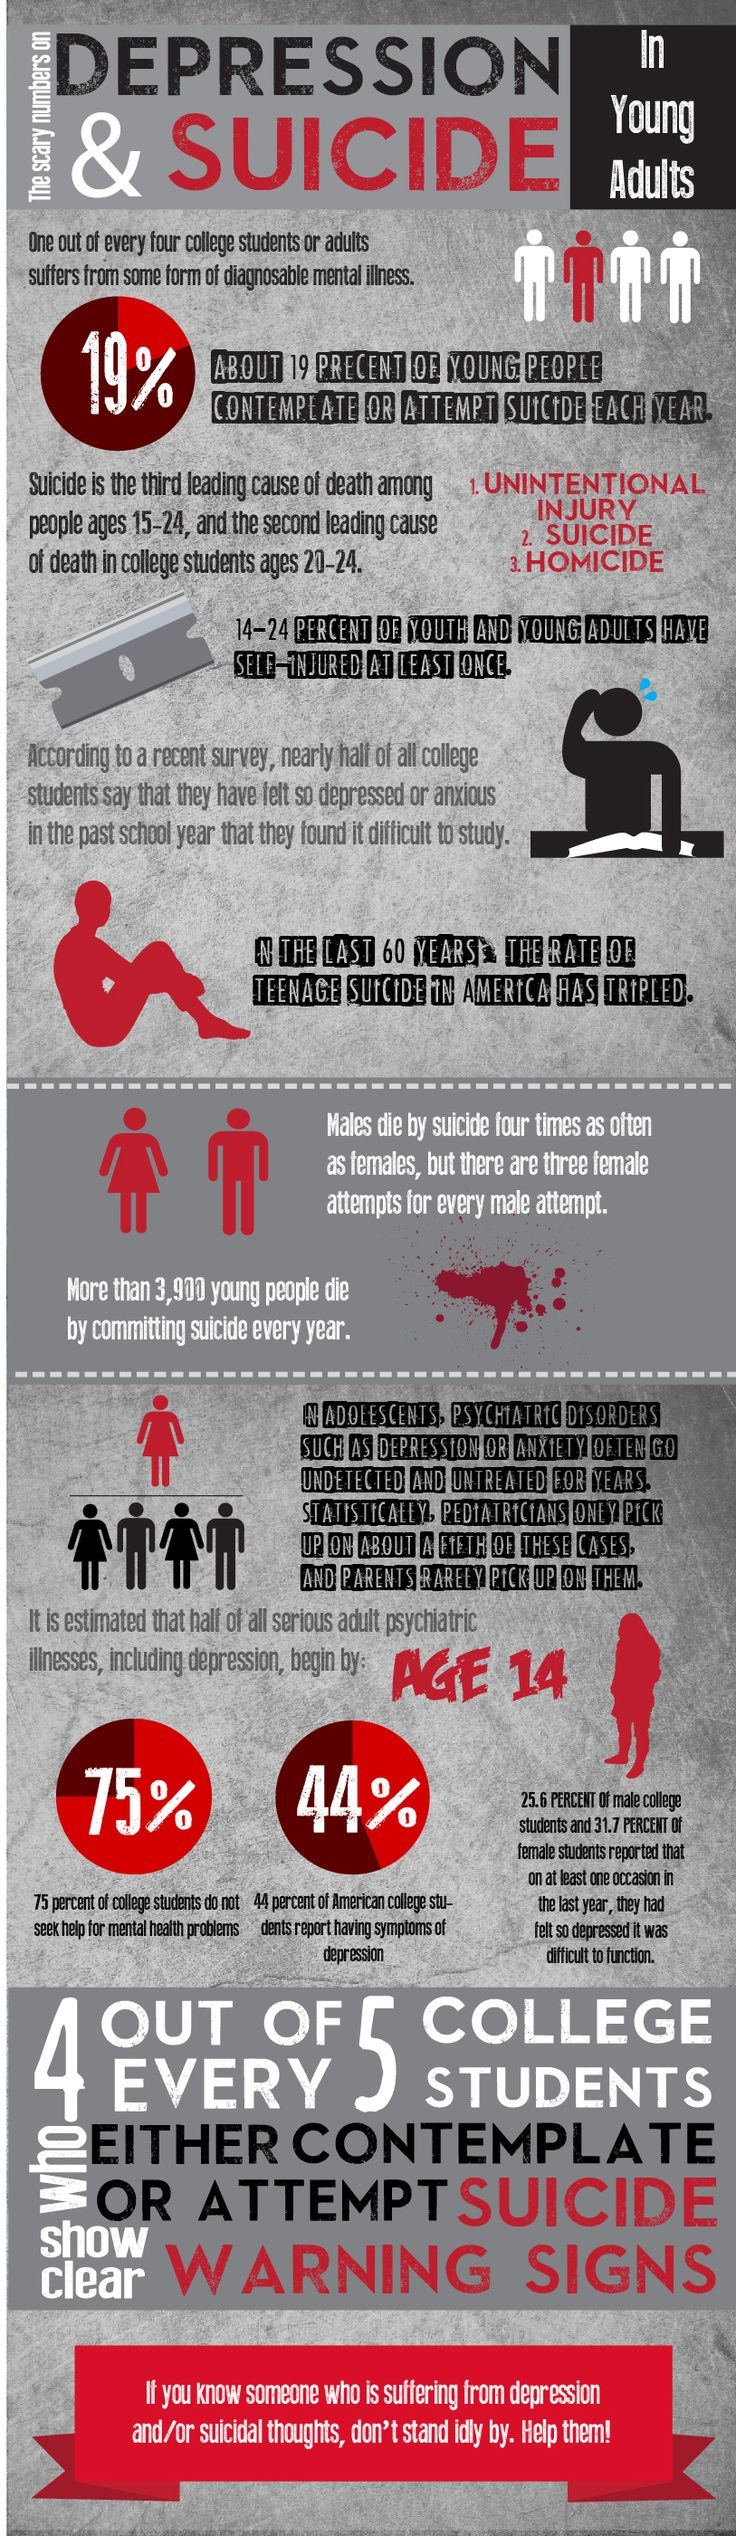 Scary statistics on the rates of depression and suicide in young adults (high school and college students).